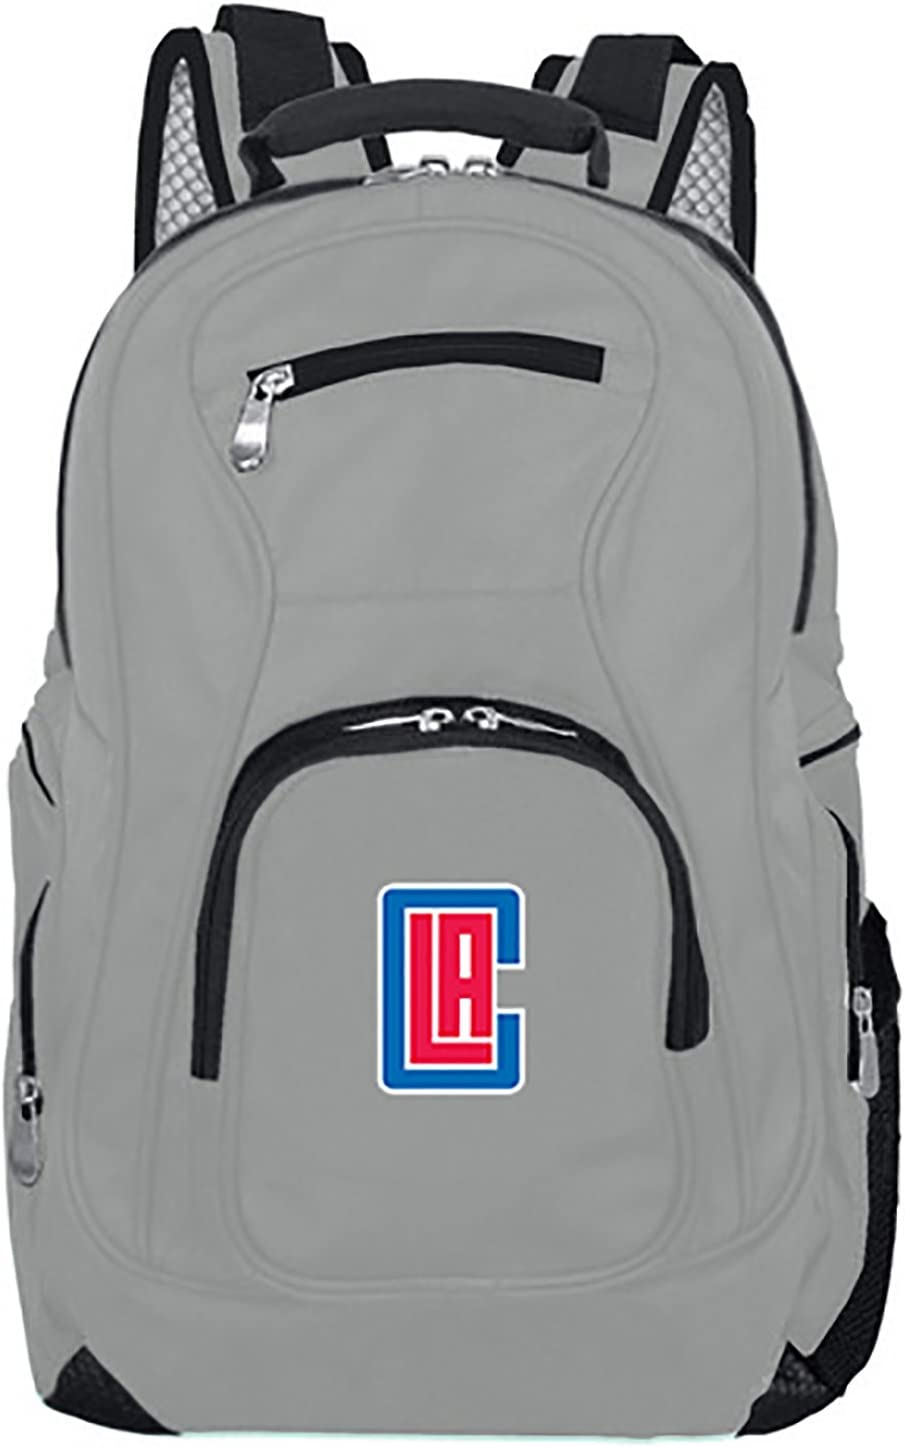 19-inches NBA Laptop Backpack Grey